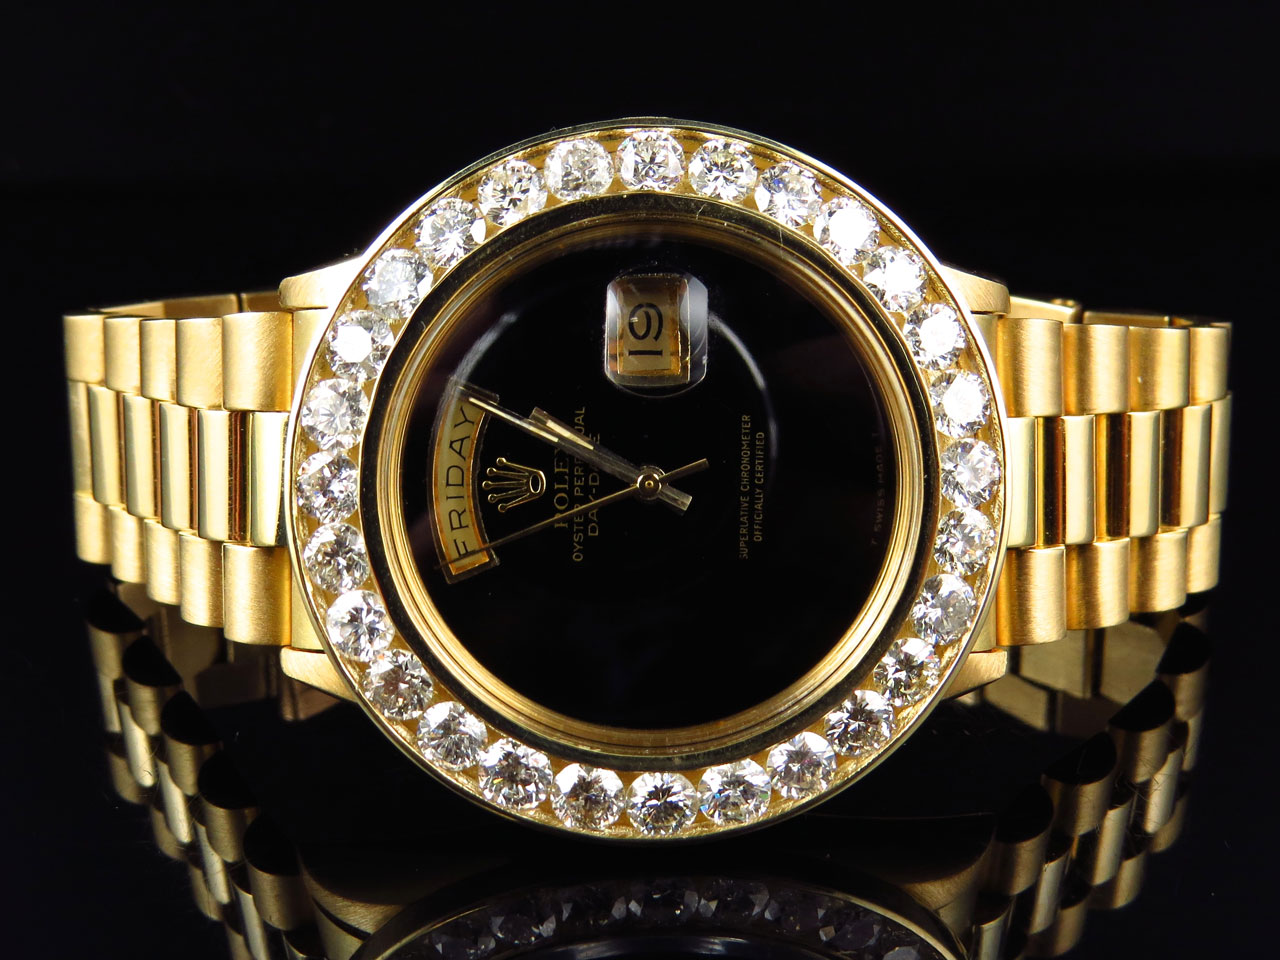 Details about 18k Yellow Gold Mens Rolex President Day,Date XL Diamond  Bezel Watch 7.2 Ct